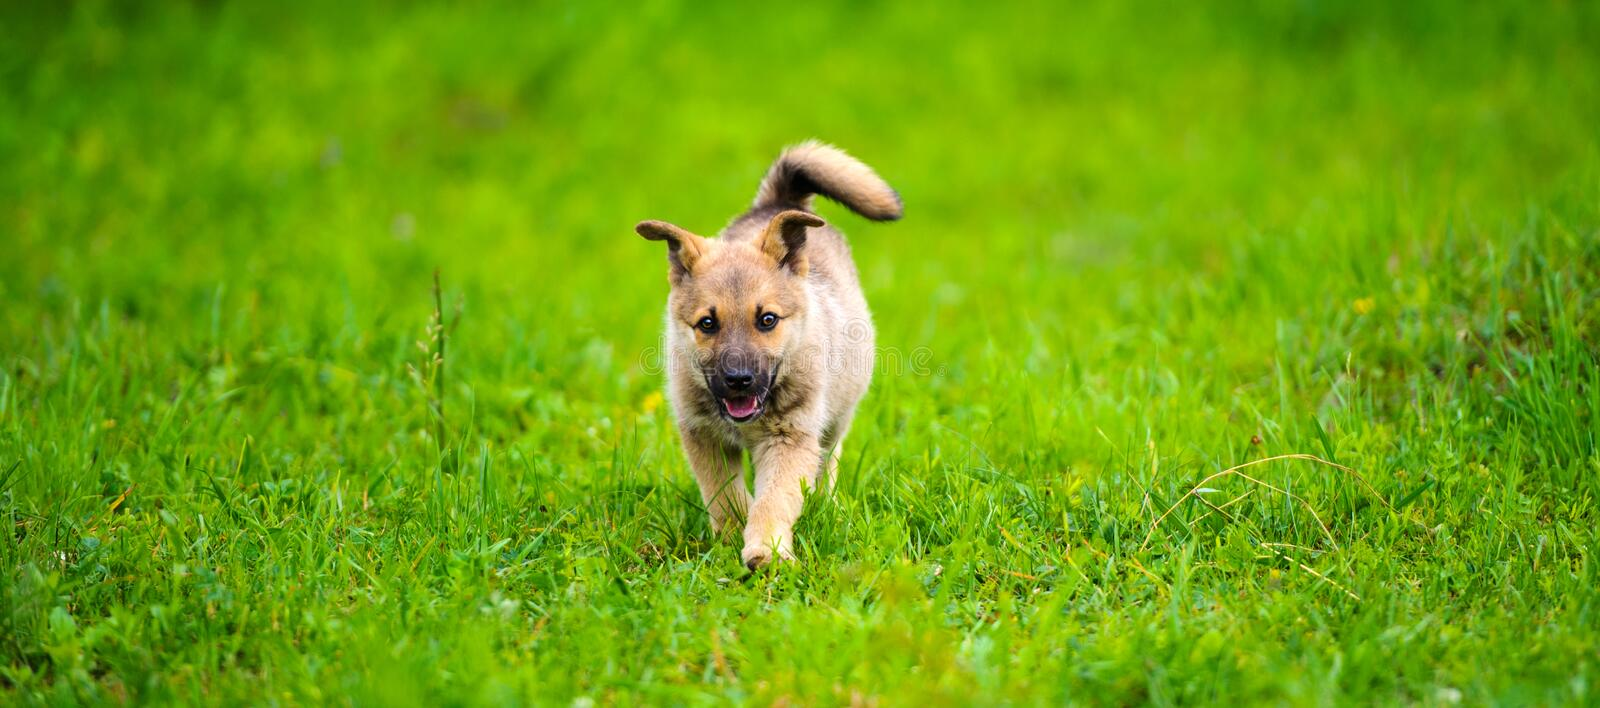 Little puppy is running happily with floppy ears trough a garden with green grass. Outside, fun, small, adorable, animal, background, beautiful, black, breed stock photo